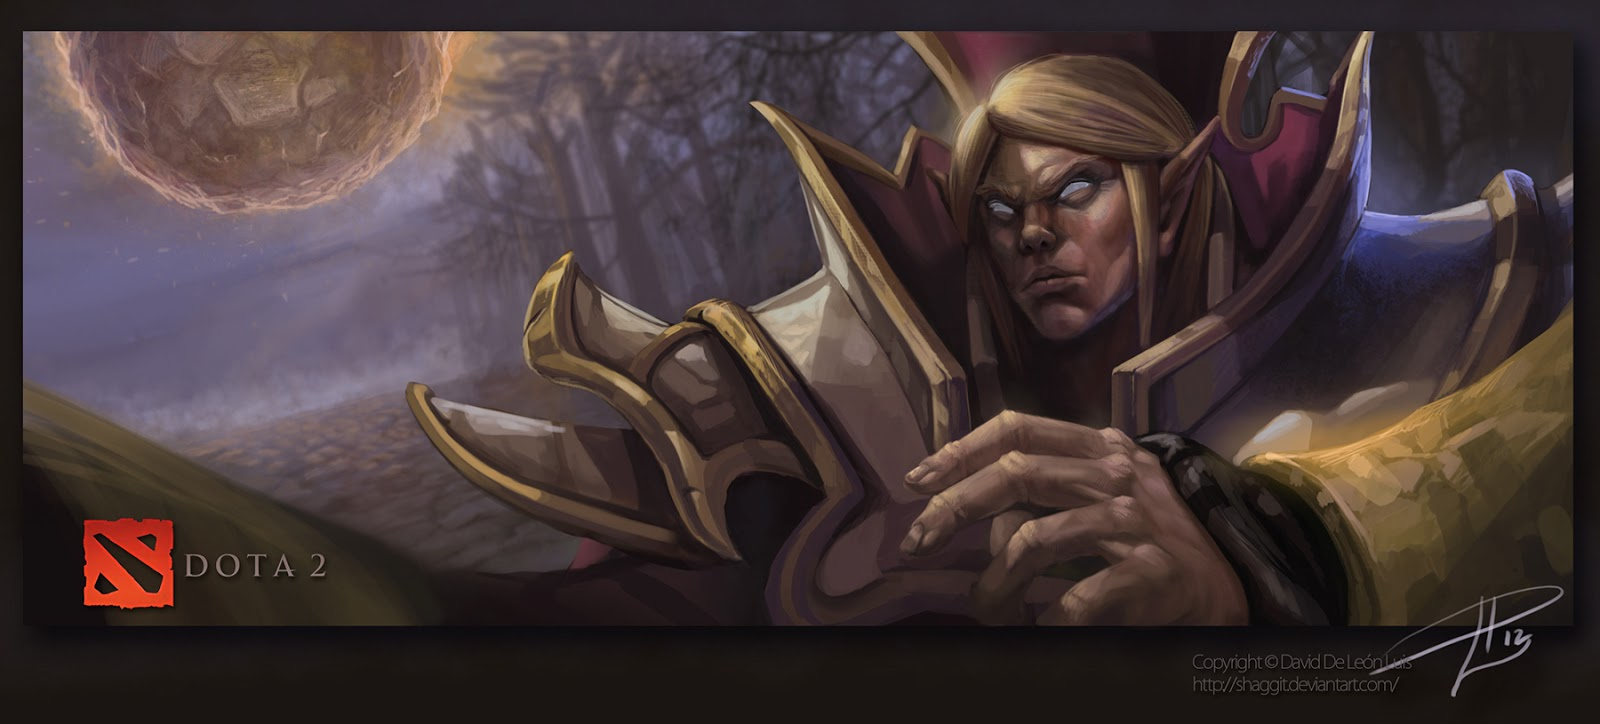 Dota 2 Wallpapers Dota2 Fan Art Invoker by david de leon luis 1600x724